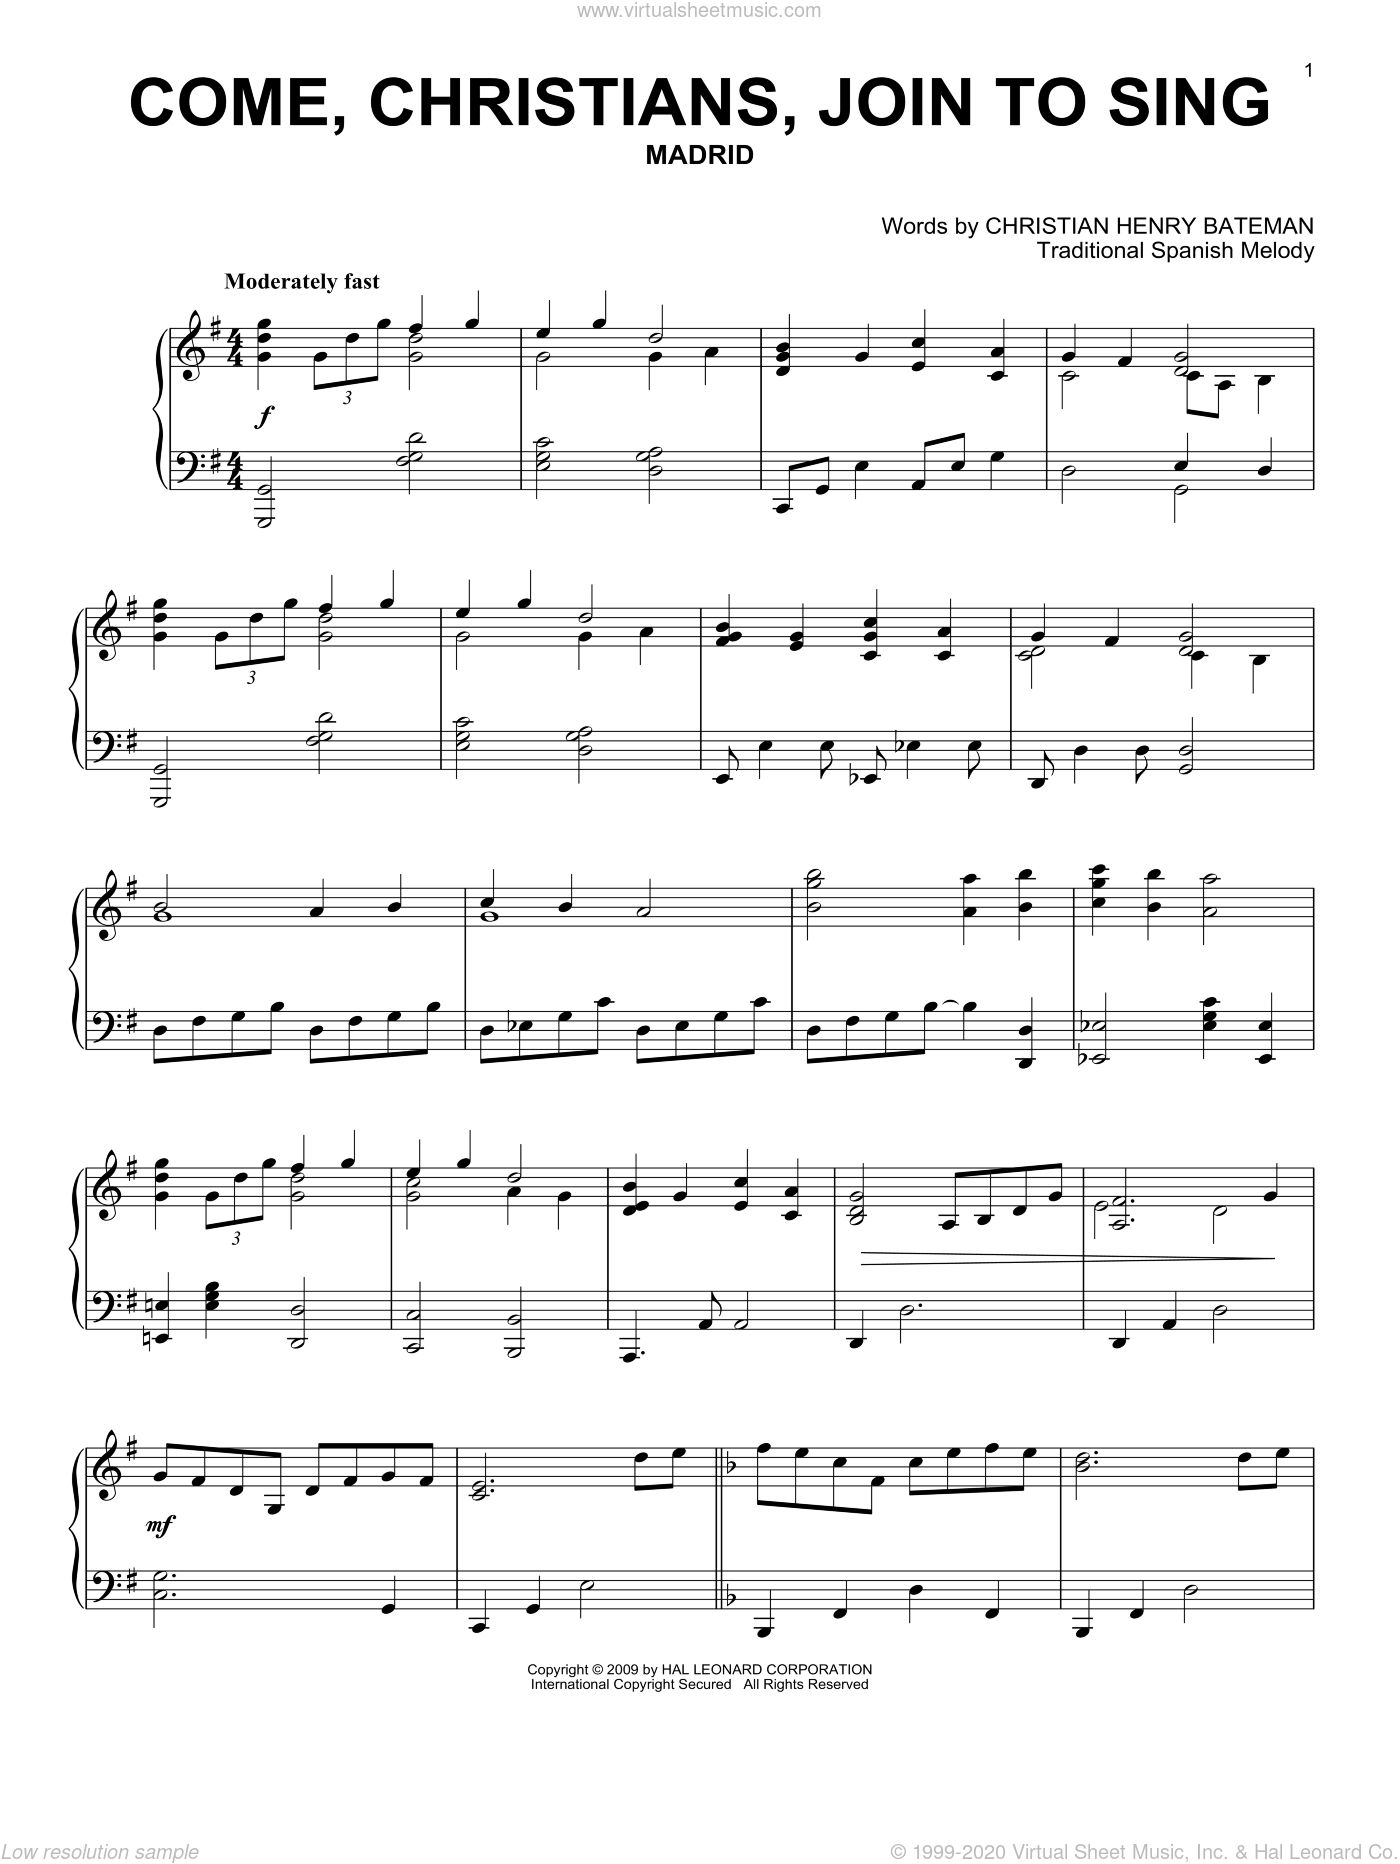 Come, Christians, Join To Sing, (intermediate) sheet music for piano solo by Christian Henry Bateman and Miscellaneous, intermediate skill level